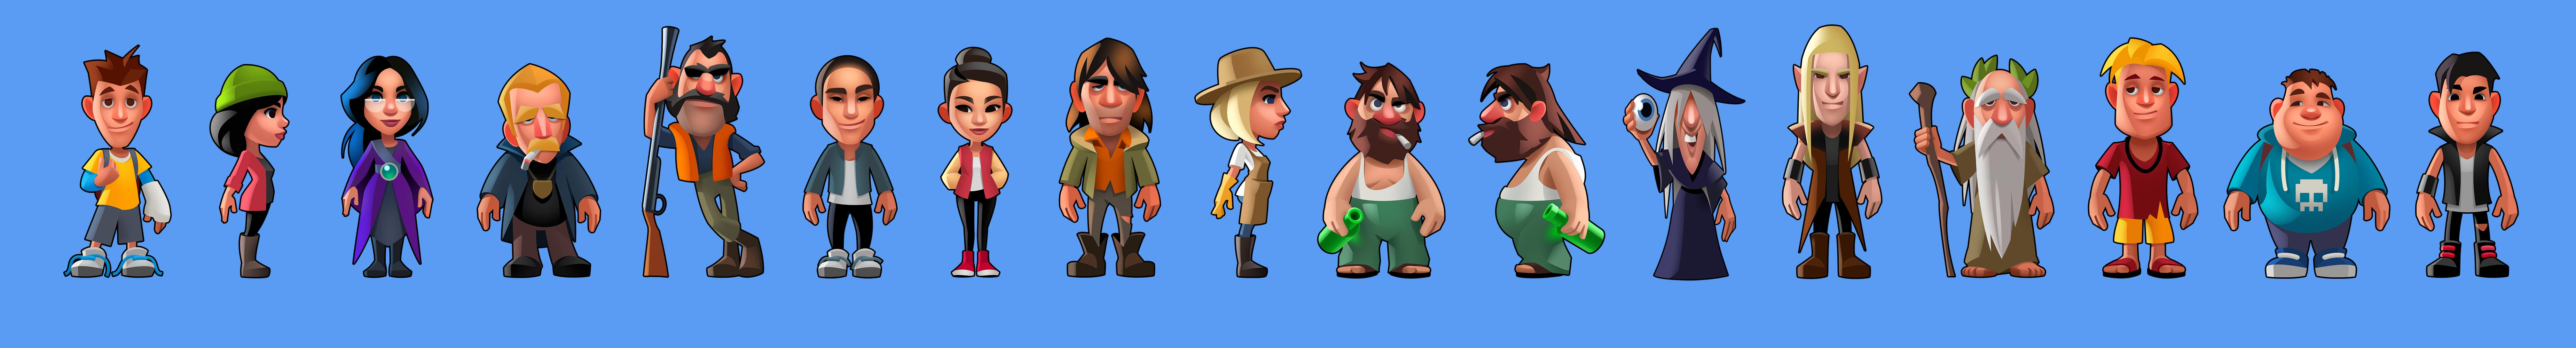 seaport-characters